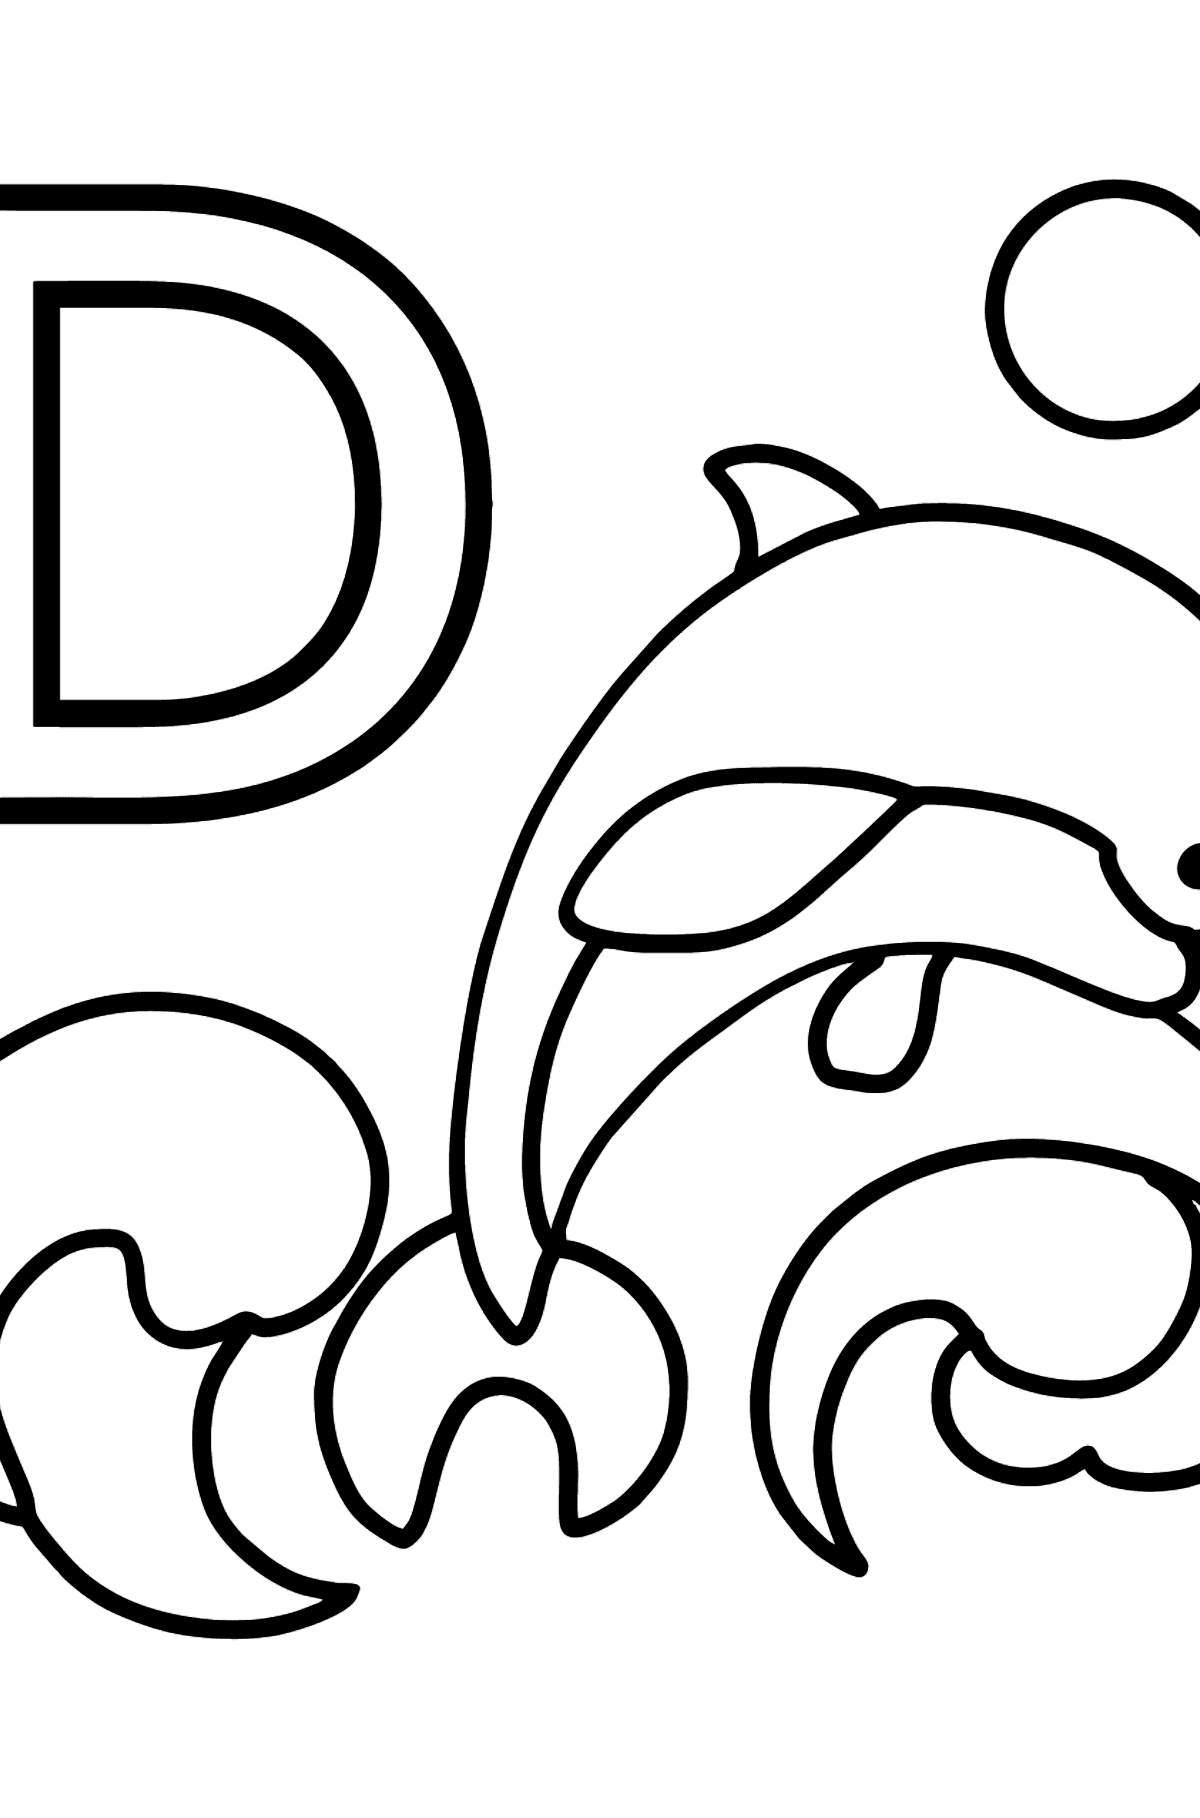 German Letter D coloring pages - DELFIN - Coloring Pages for Kids